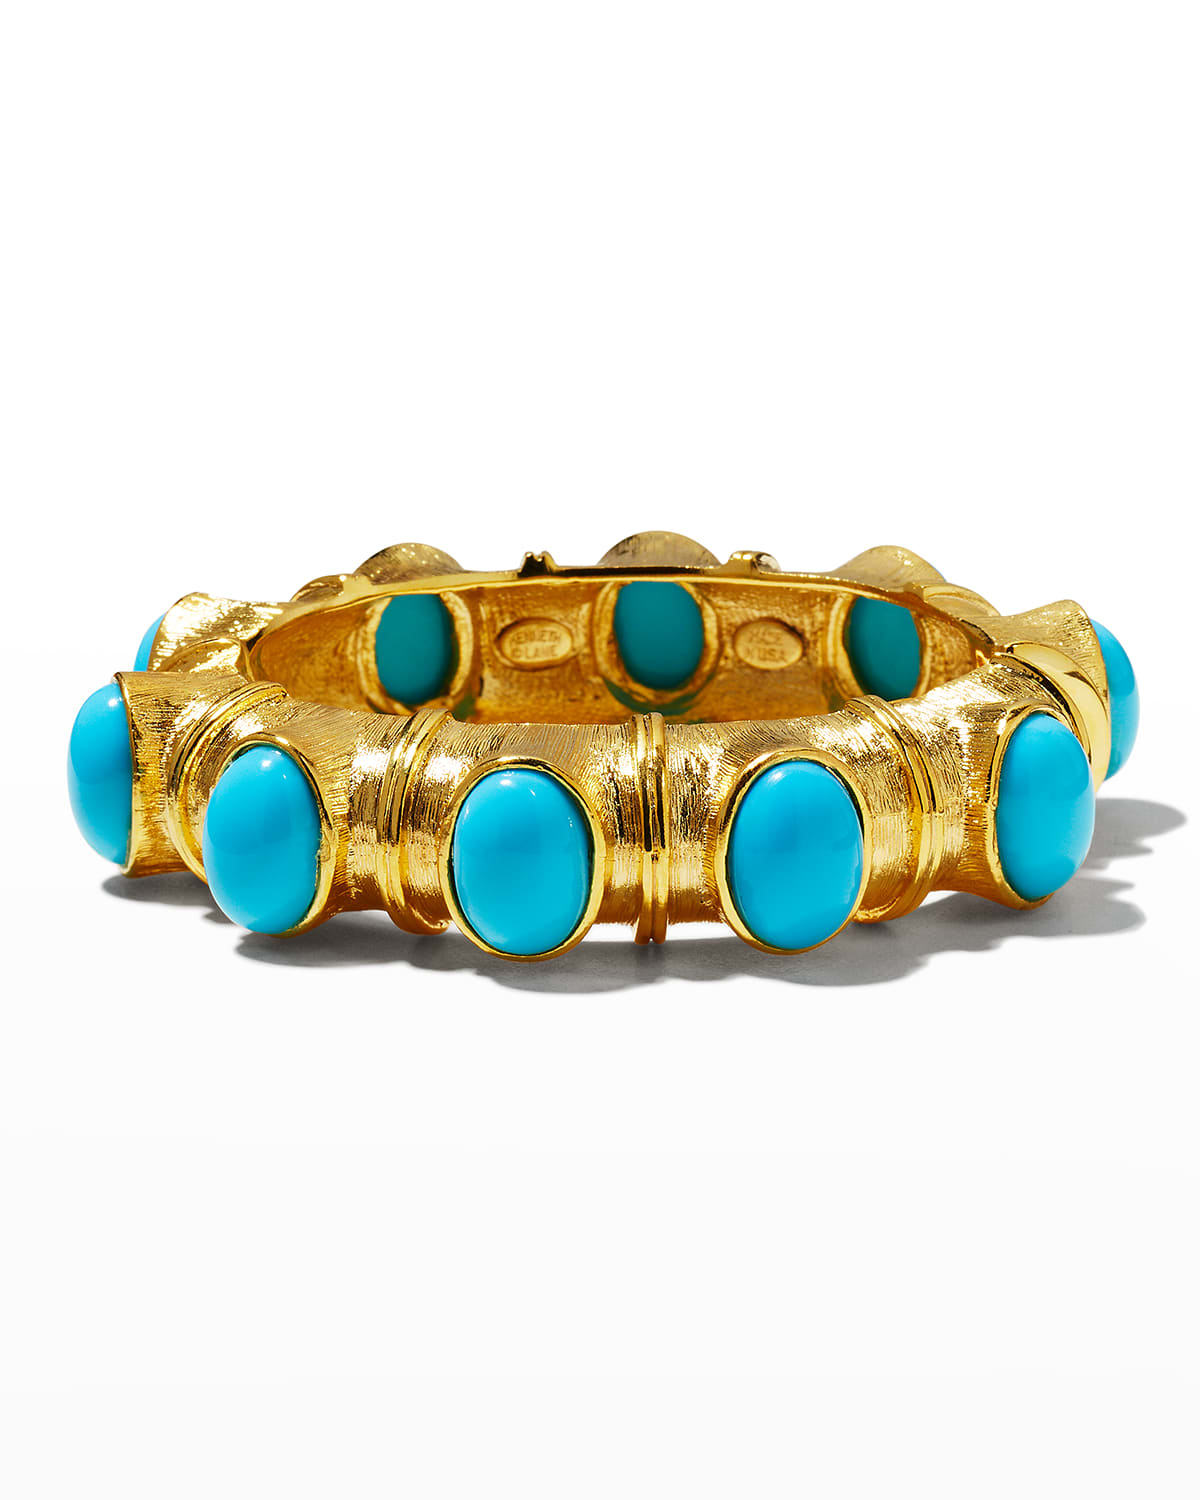 Gold with Turquoise Cabochons Hinged Bracelet